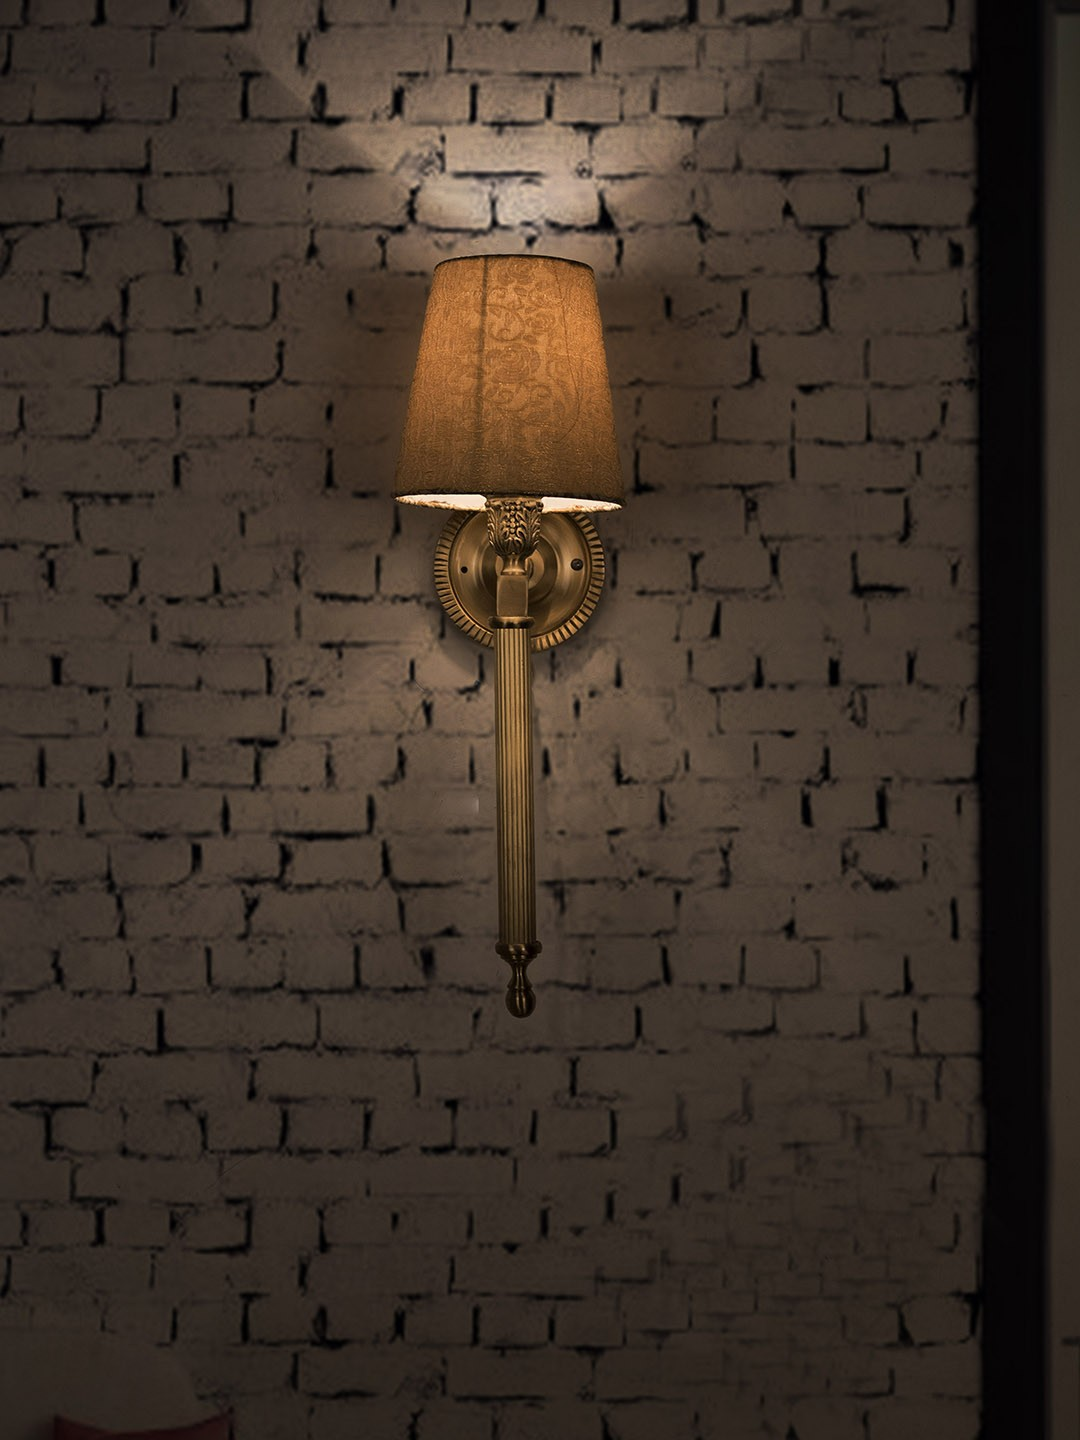 Slim Cast Brass Torchiere Style Wall Sconce with Golden Taper Shades